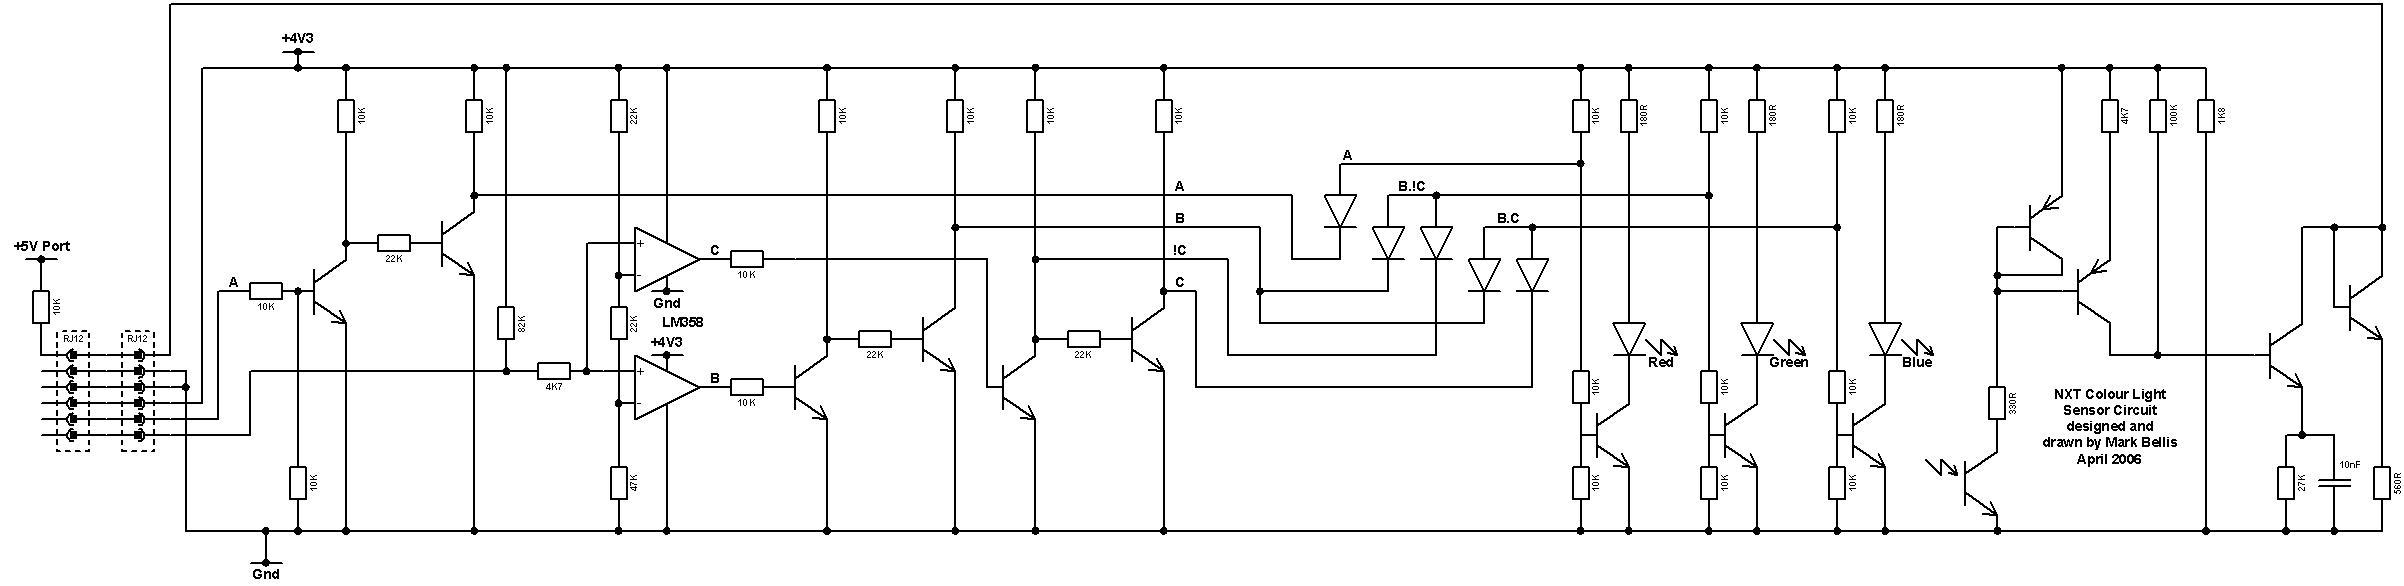 nxt_3-colour_light_sensor_circuit_schematic.jpg